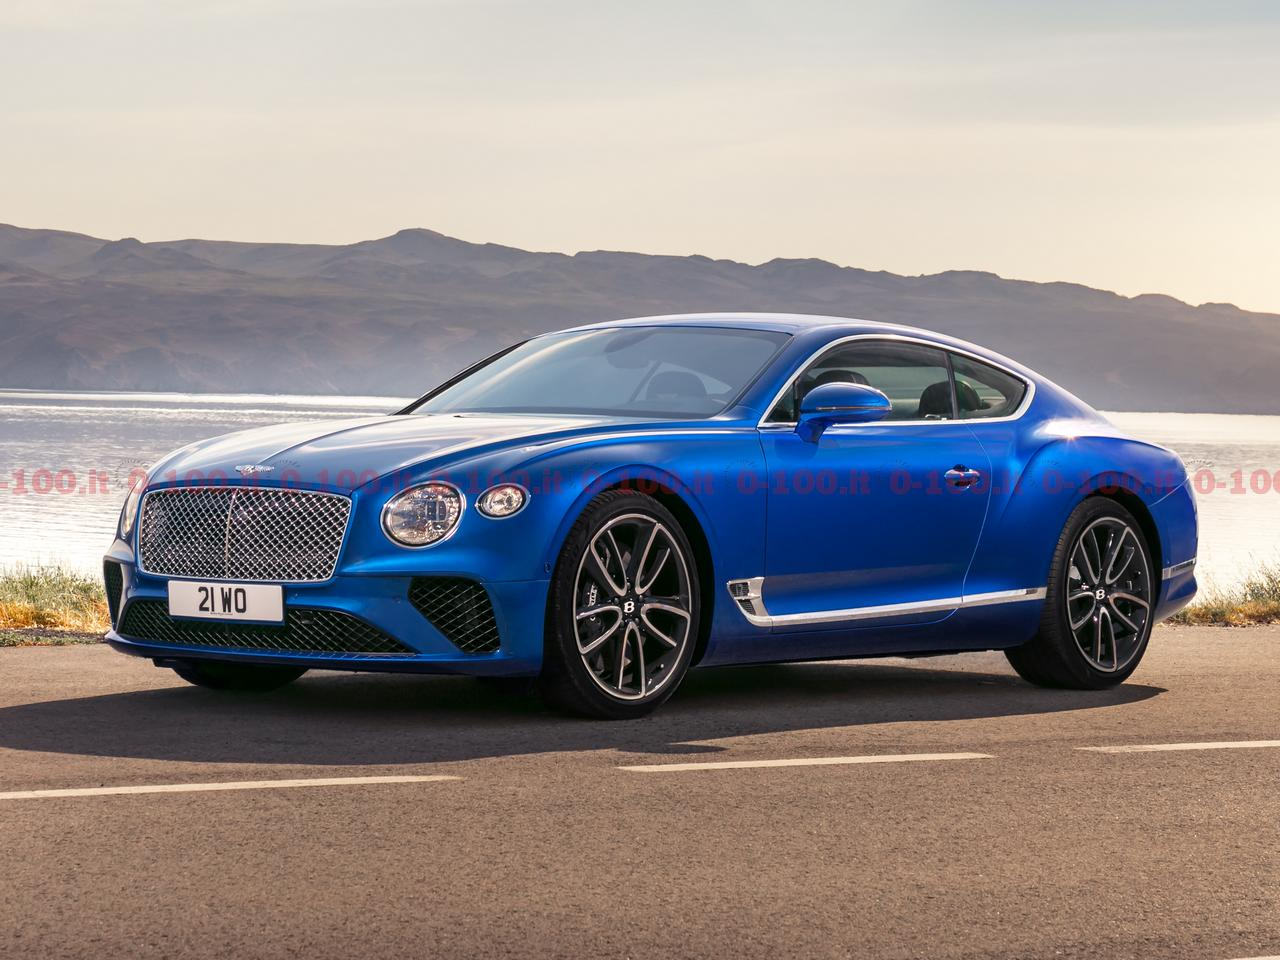 bentley-Continental_GT_2018_0-100-a16